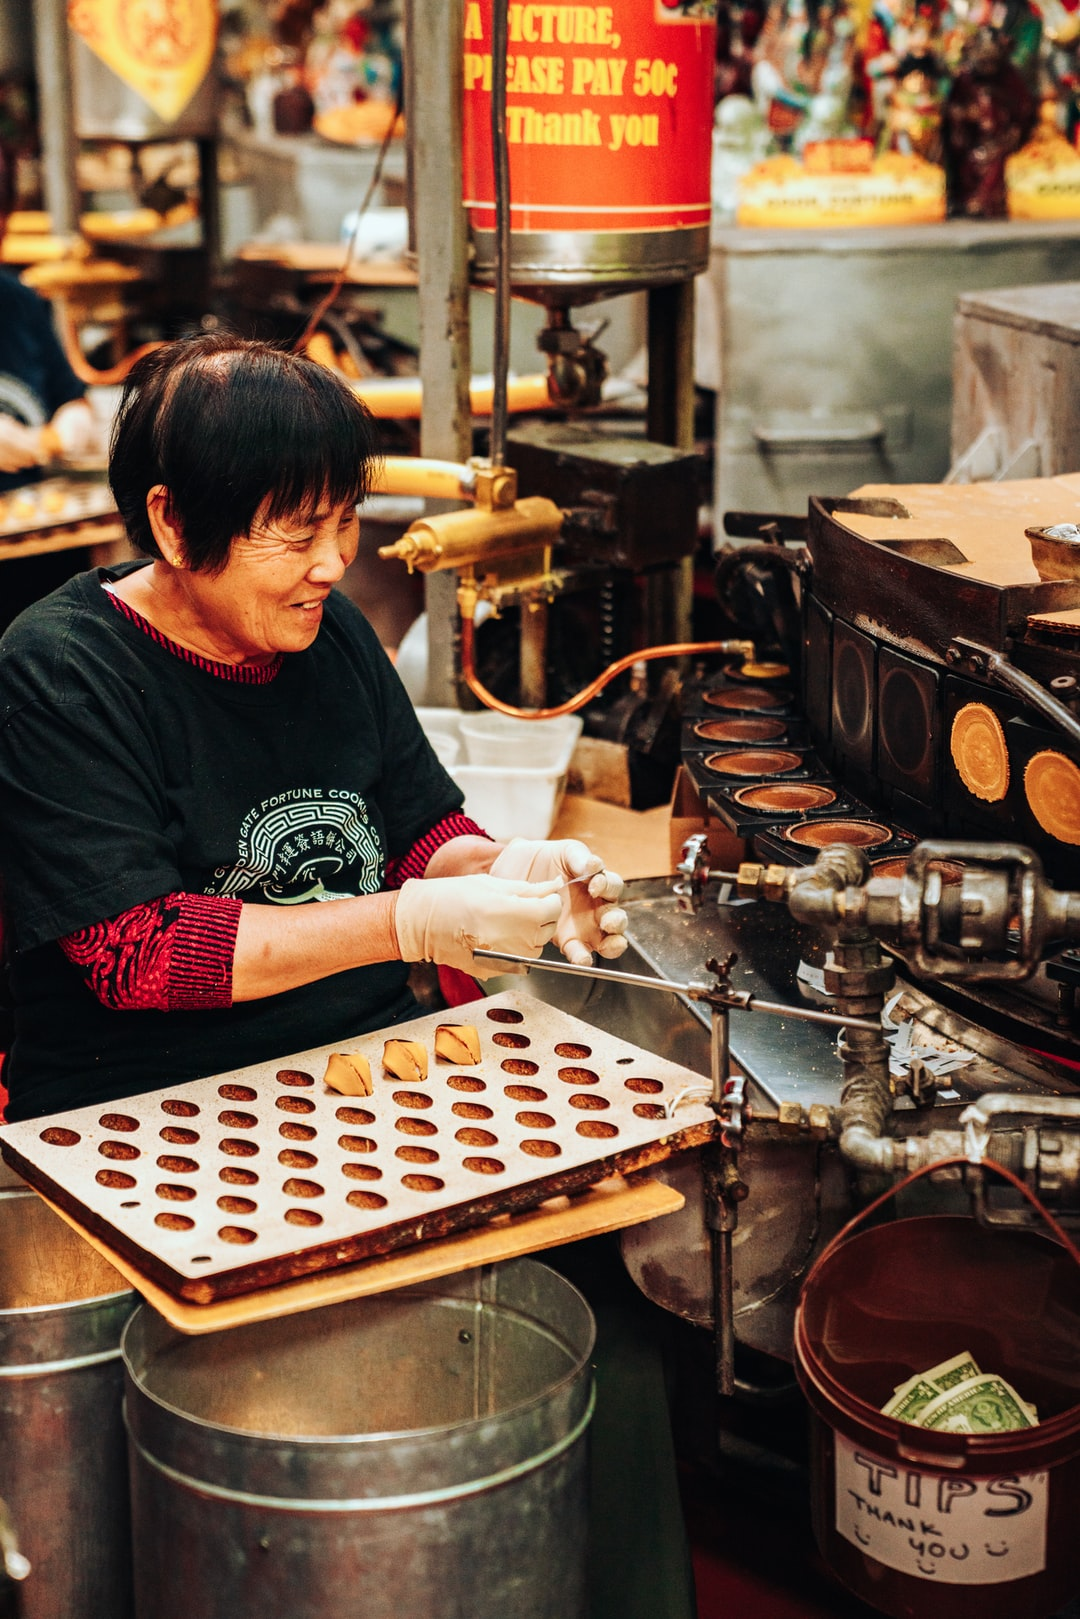 Woman happily making fortune cookies at Golden Gate Fortune Cookie Factory in San Francisco.